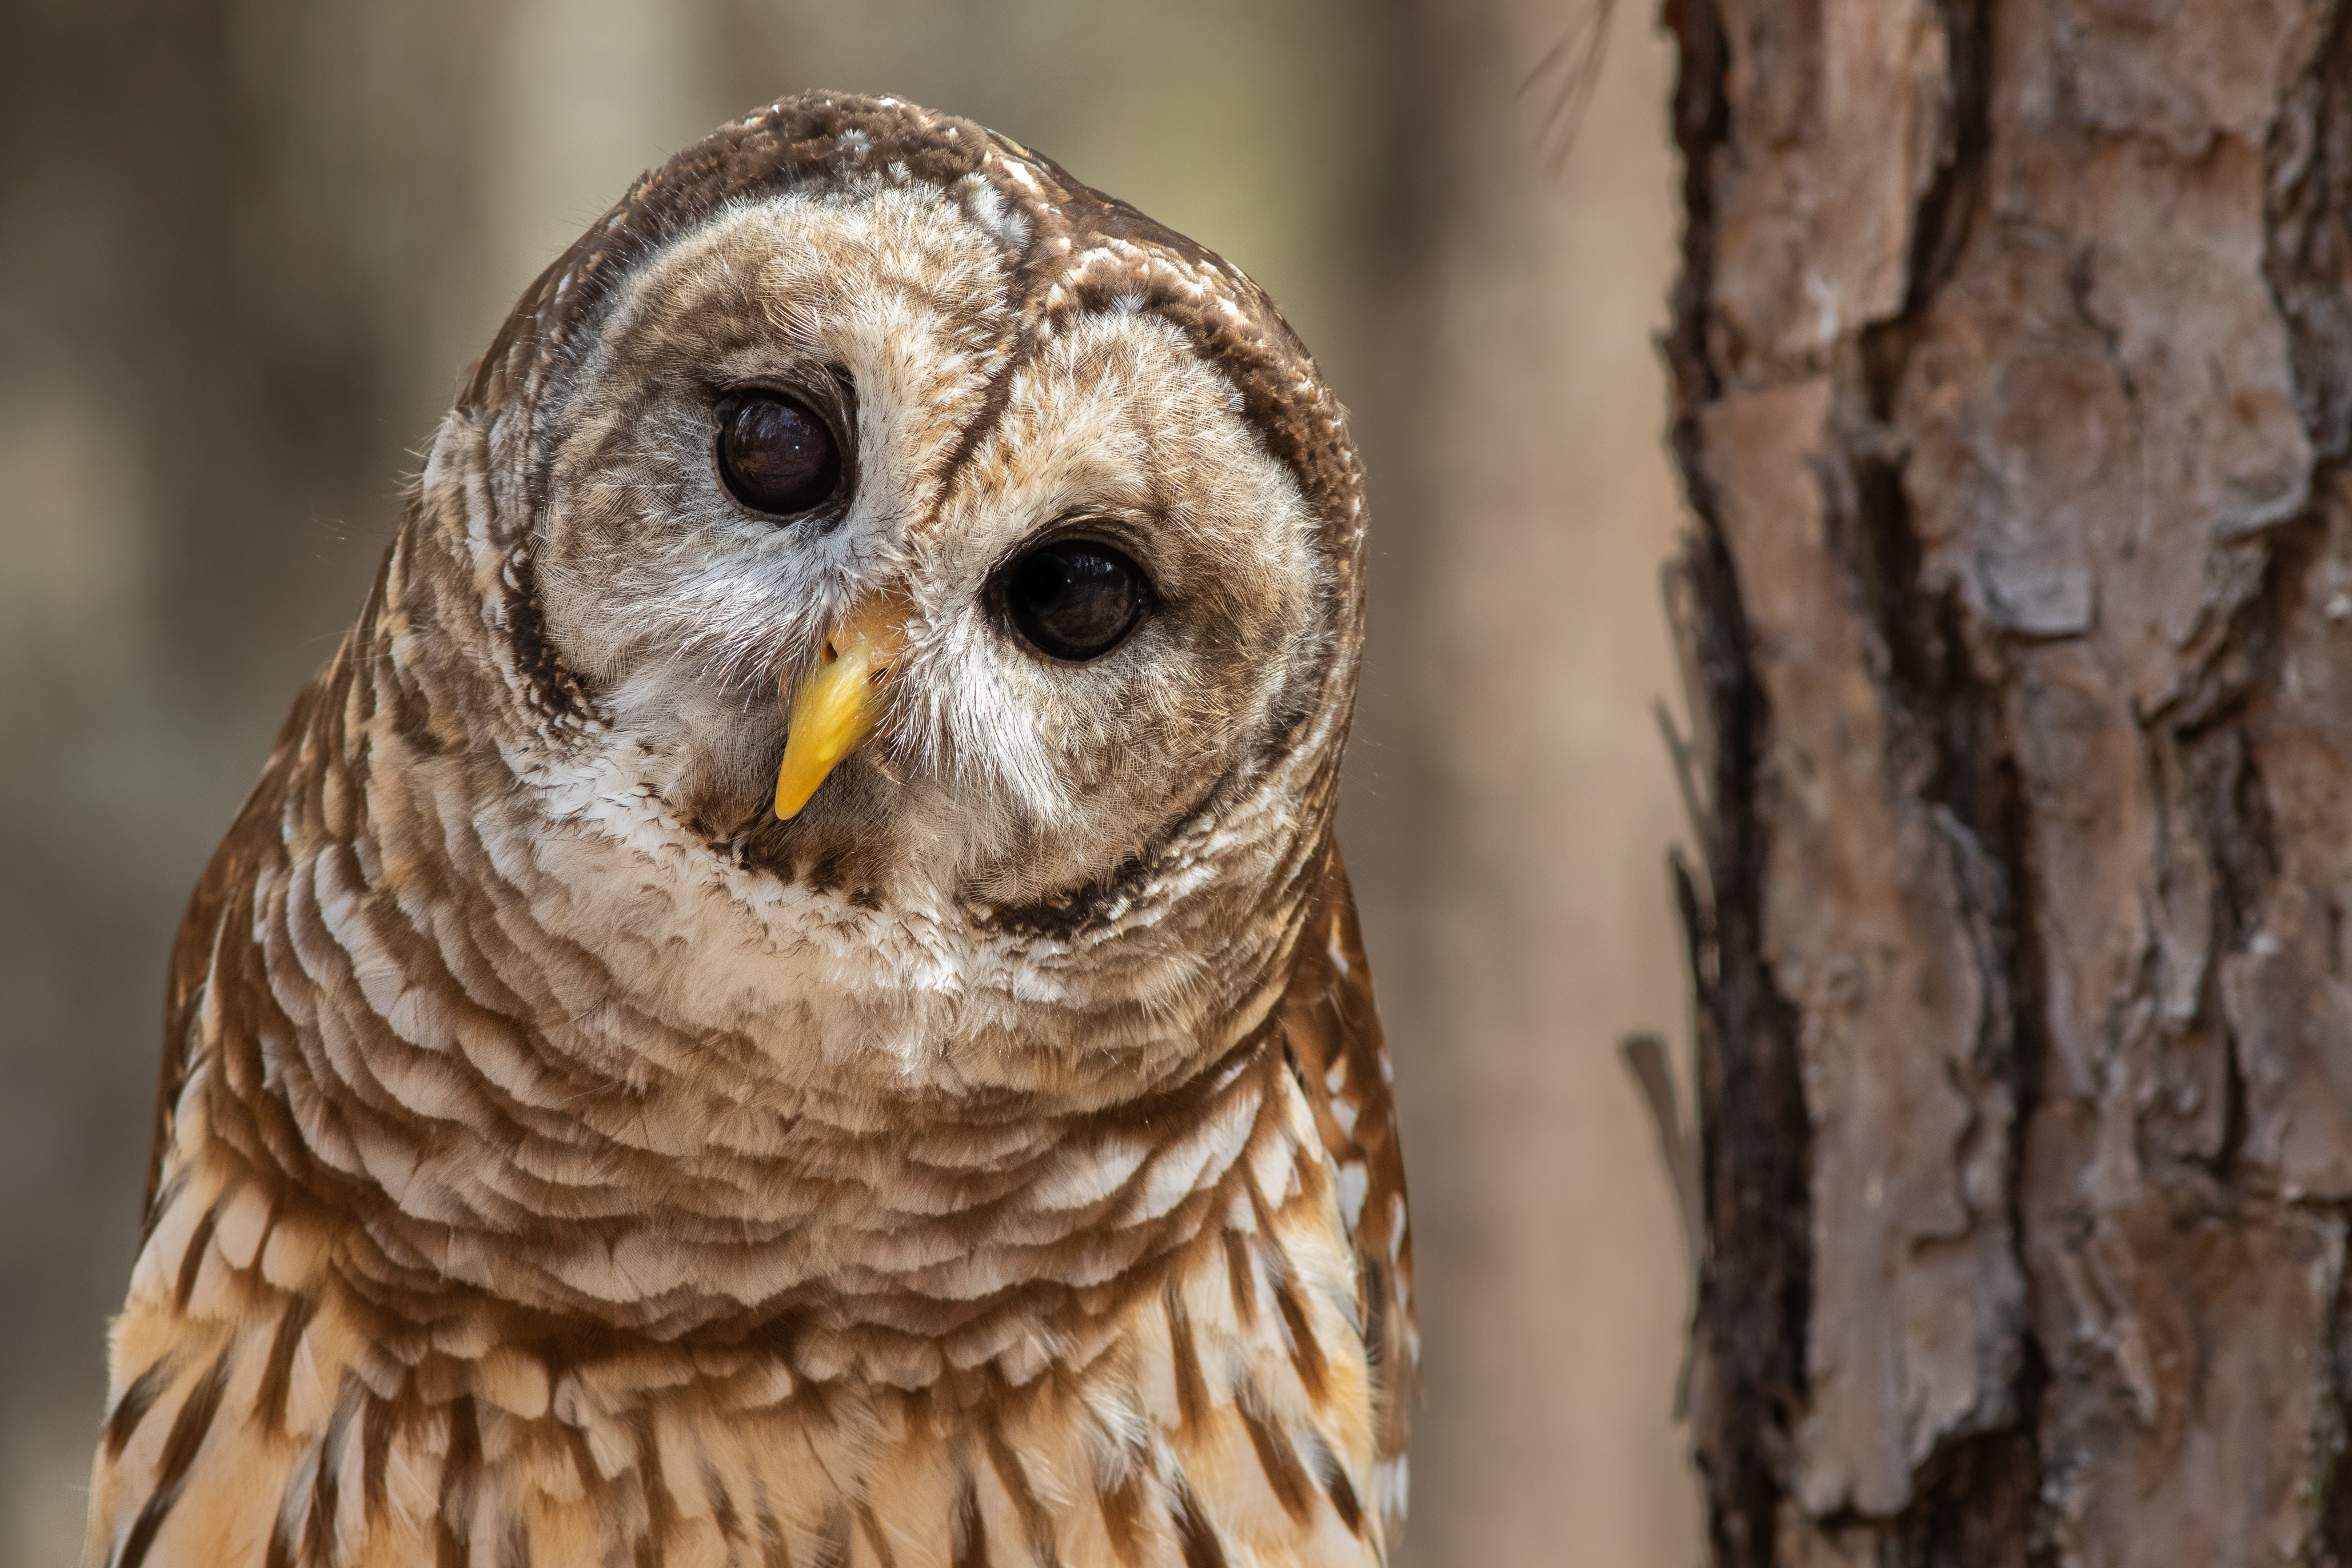 A curious barred owl.